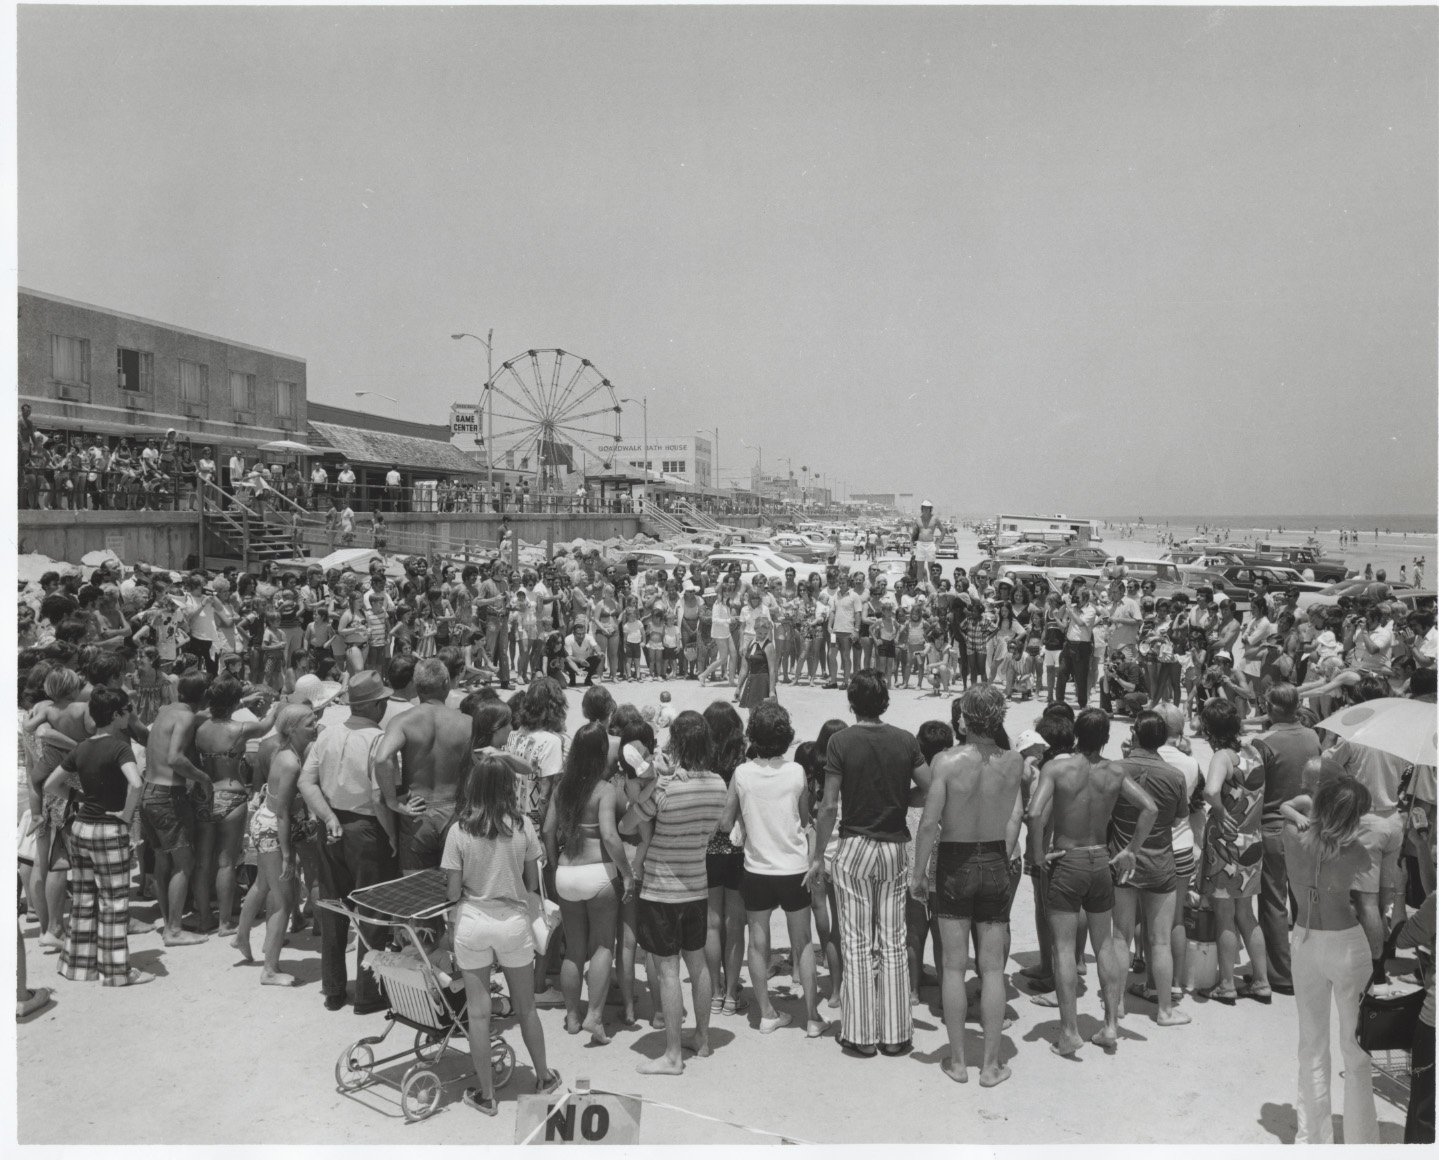 Boardwalk Talk Storytellers: A Look Back at the Boardwalk